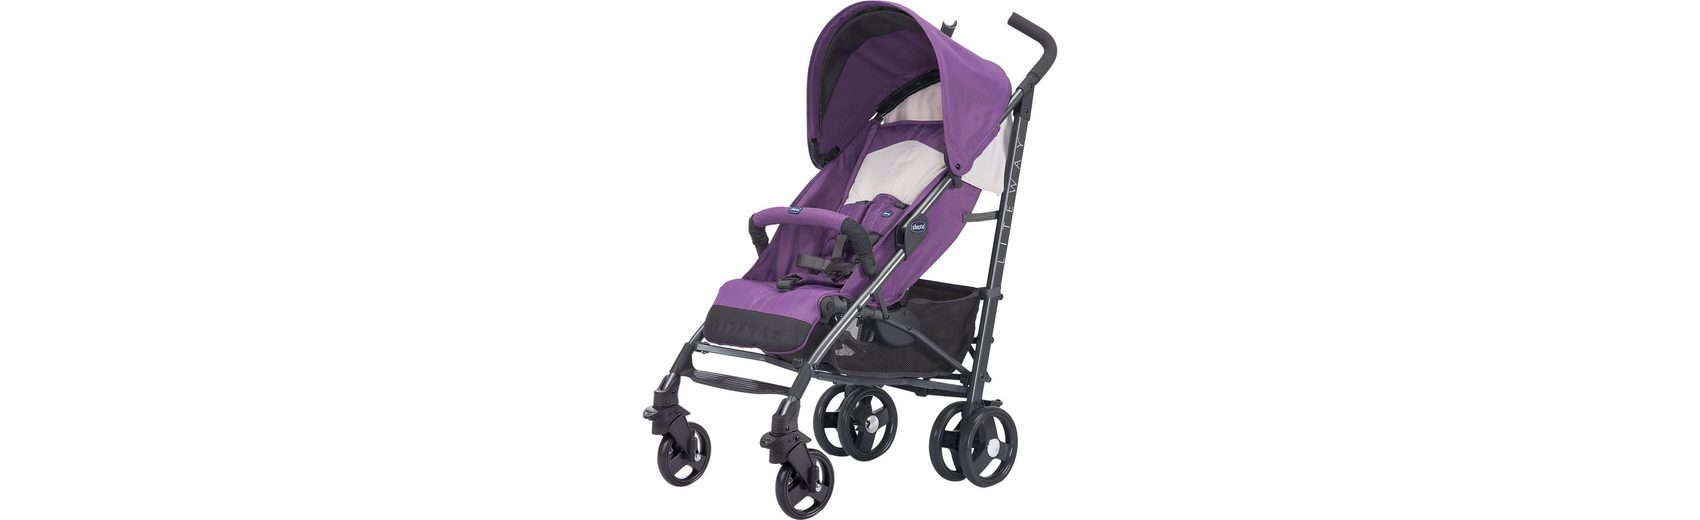 CHICCO Buggy Liteway, Premium Line, aster, 2017